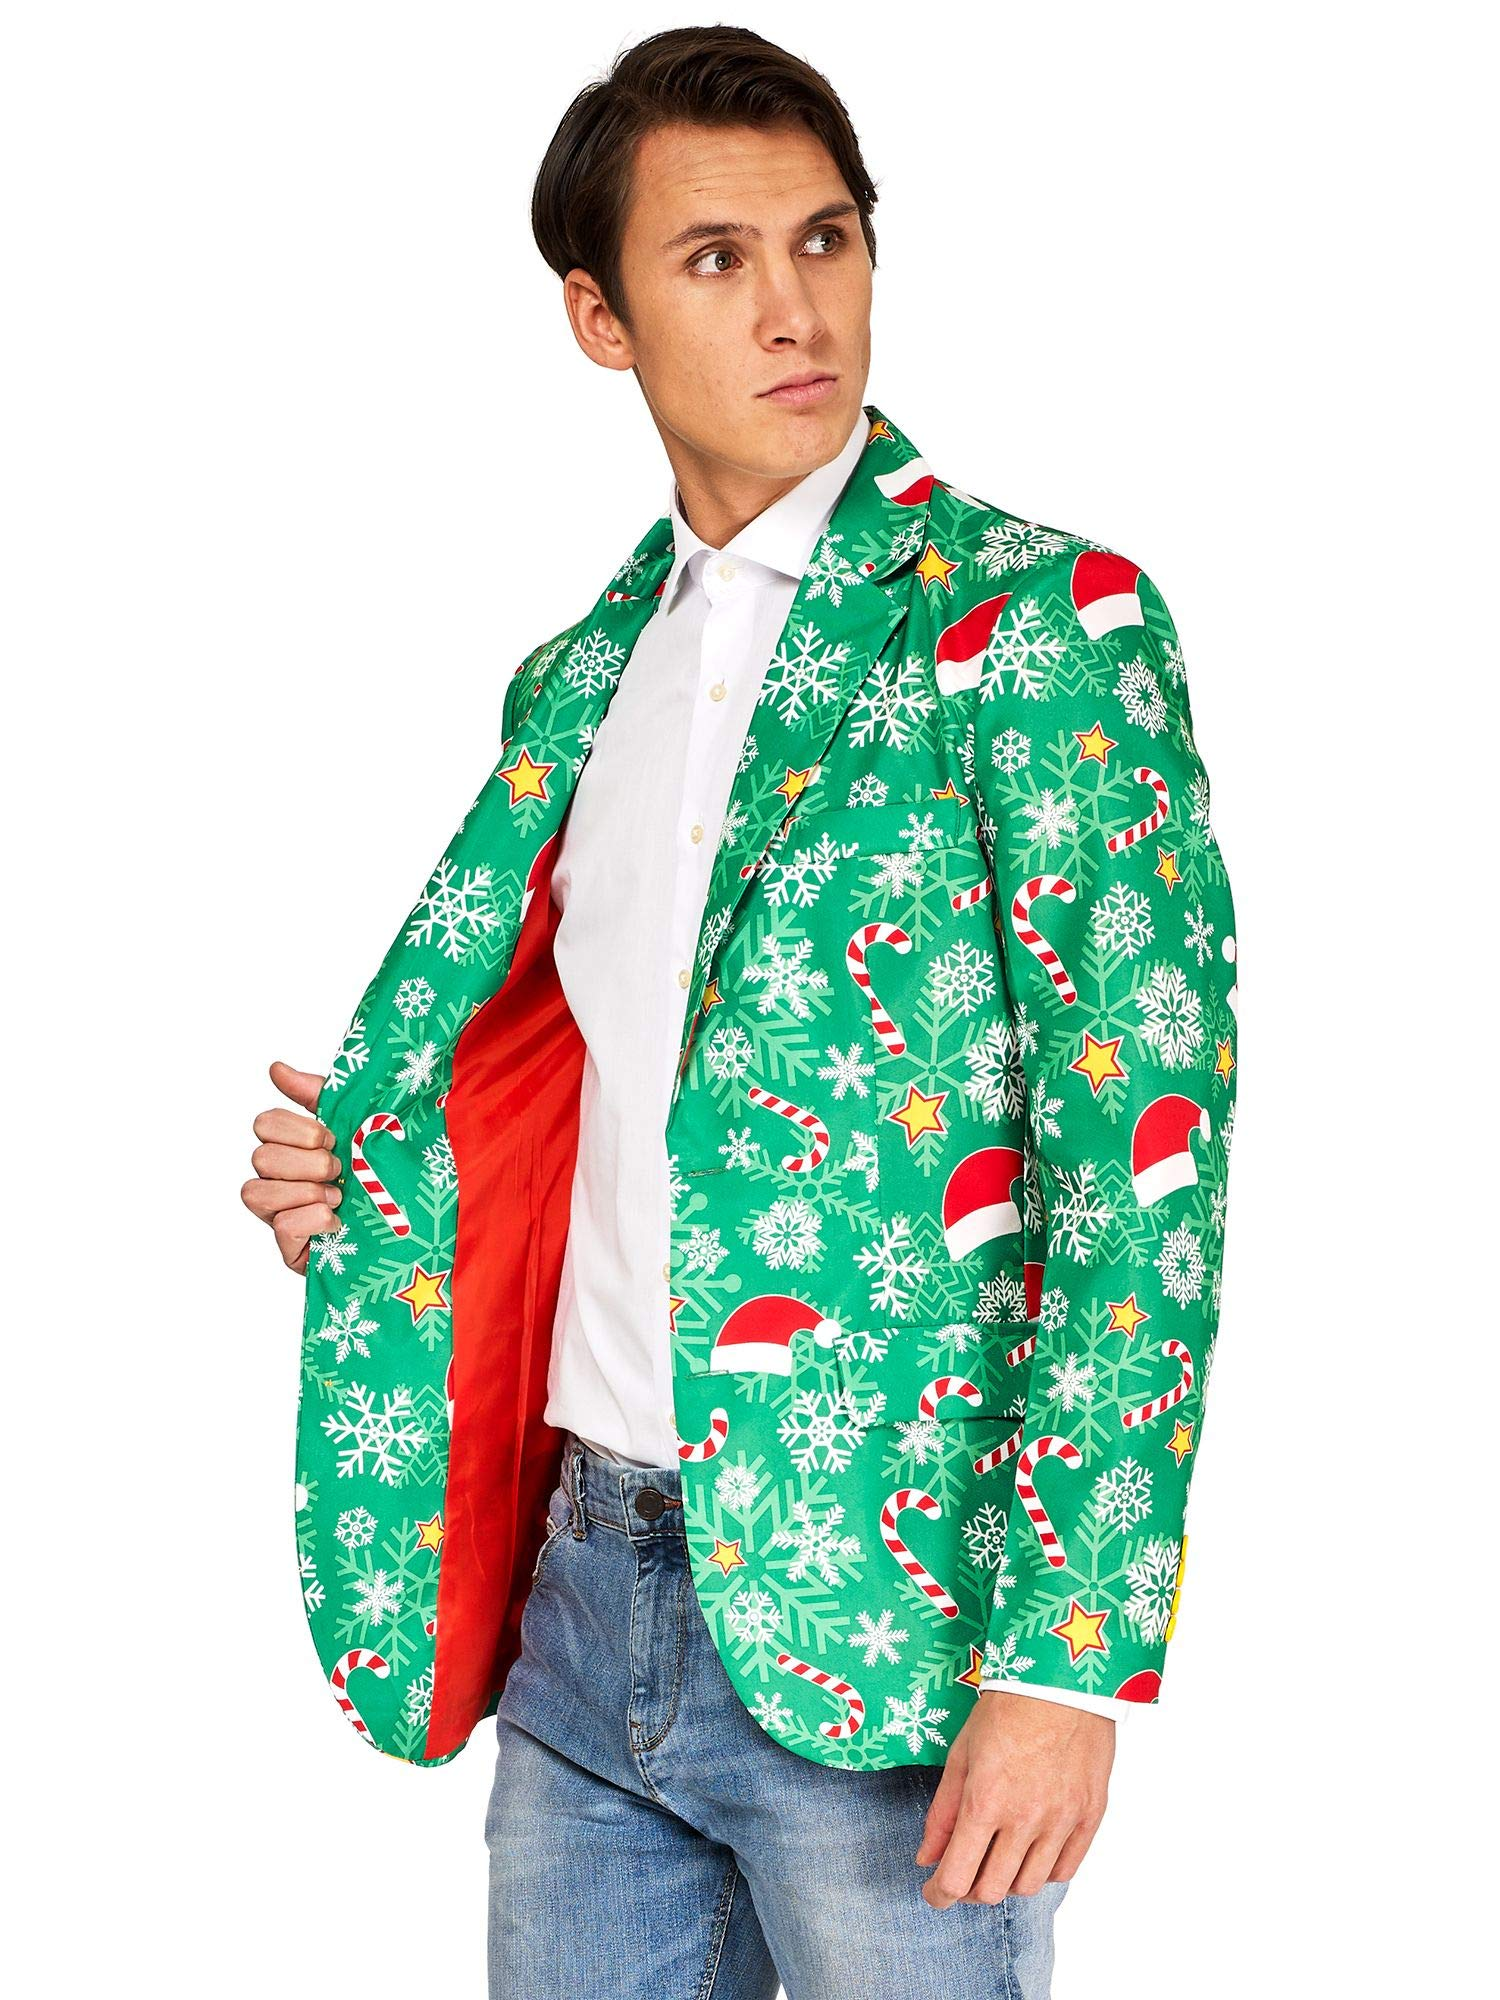 OFFSTREAM Ugly Christmas Jackets for Men - Green Time Jacket Only - Xmas Sweater Blazer - XL by OFFSTREAM